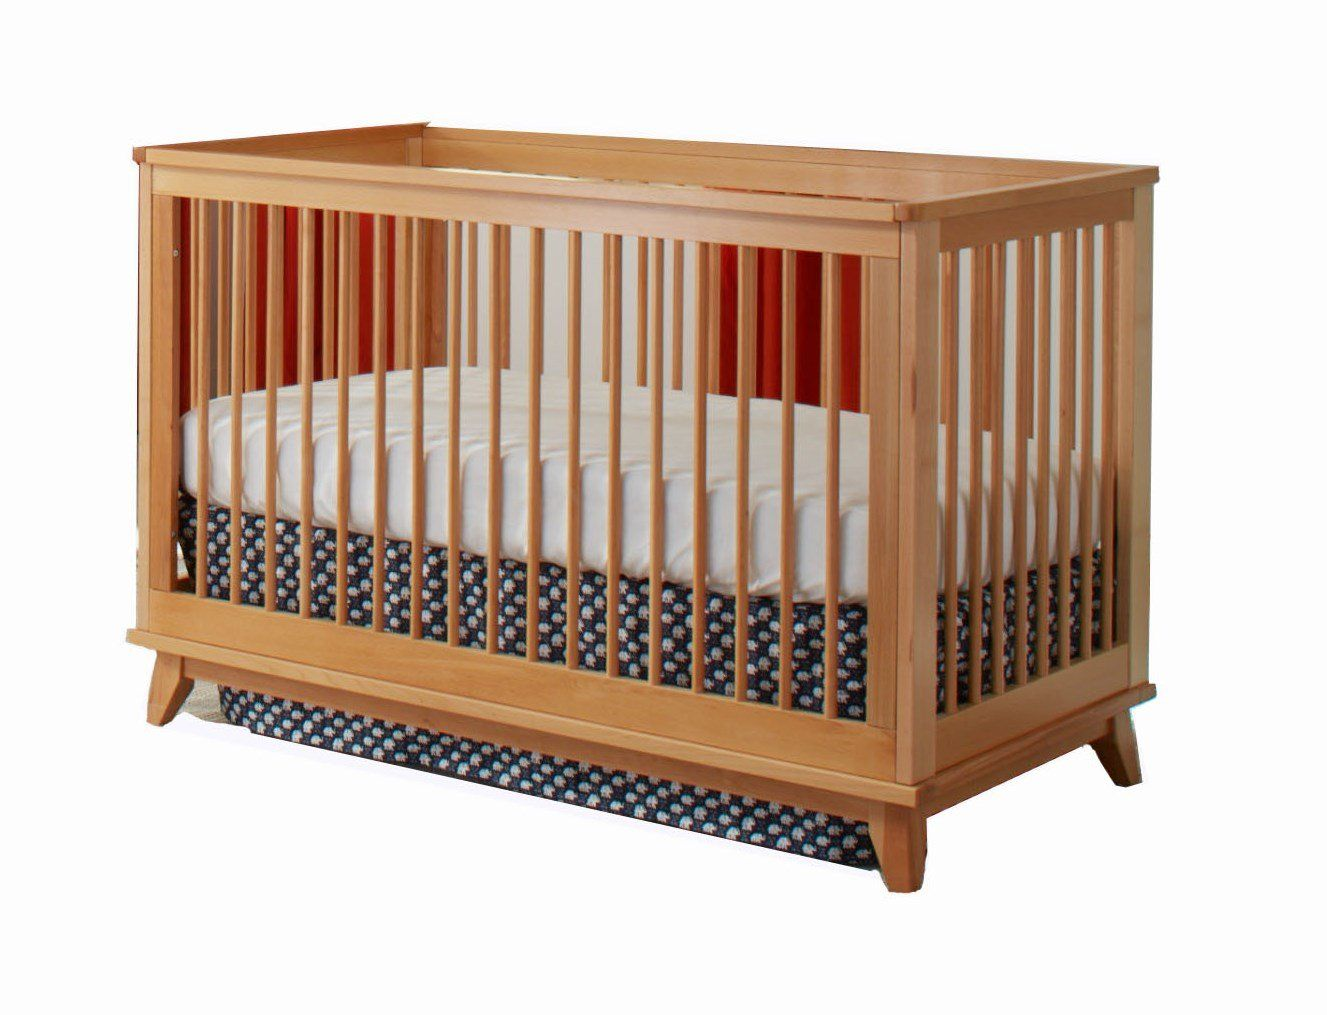 cool features drawer vintage fullbed cuts like the set cloud bertini tasteful rails curves fine wood with westwood convertible meadowdale cribs tinsley and lovely upholstered other design starting crib nursery no anne piece free queen shipping a this in silor chest